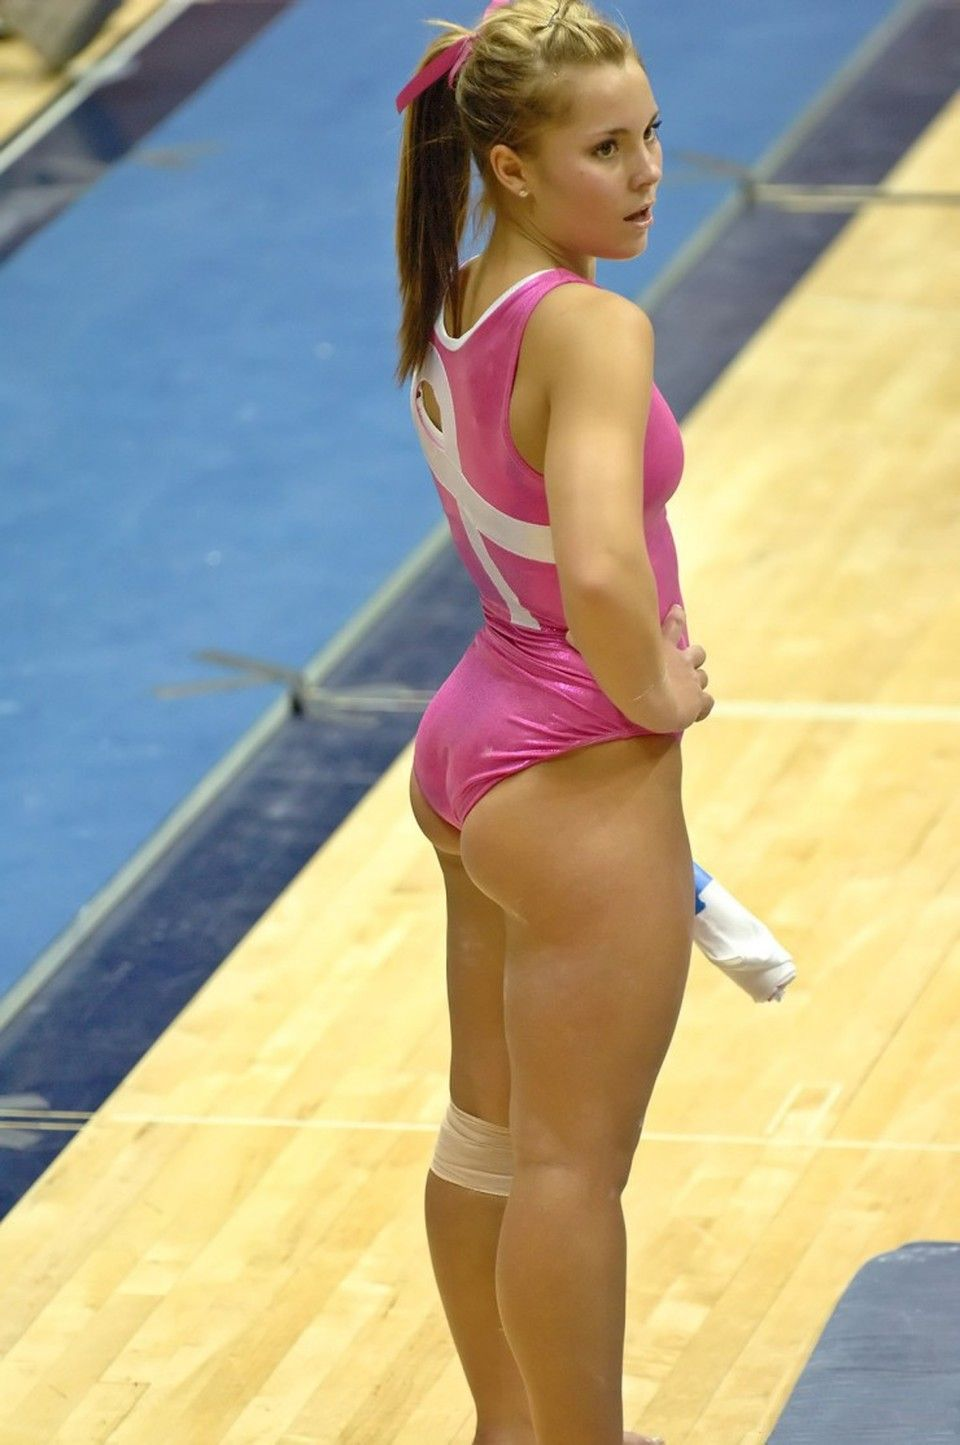 bridgette glass, american tumbling gymnast | health and sports